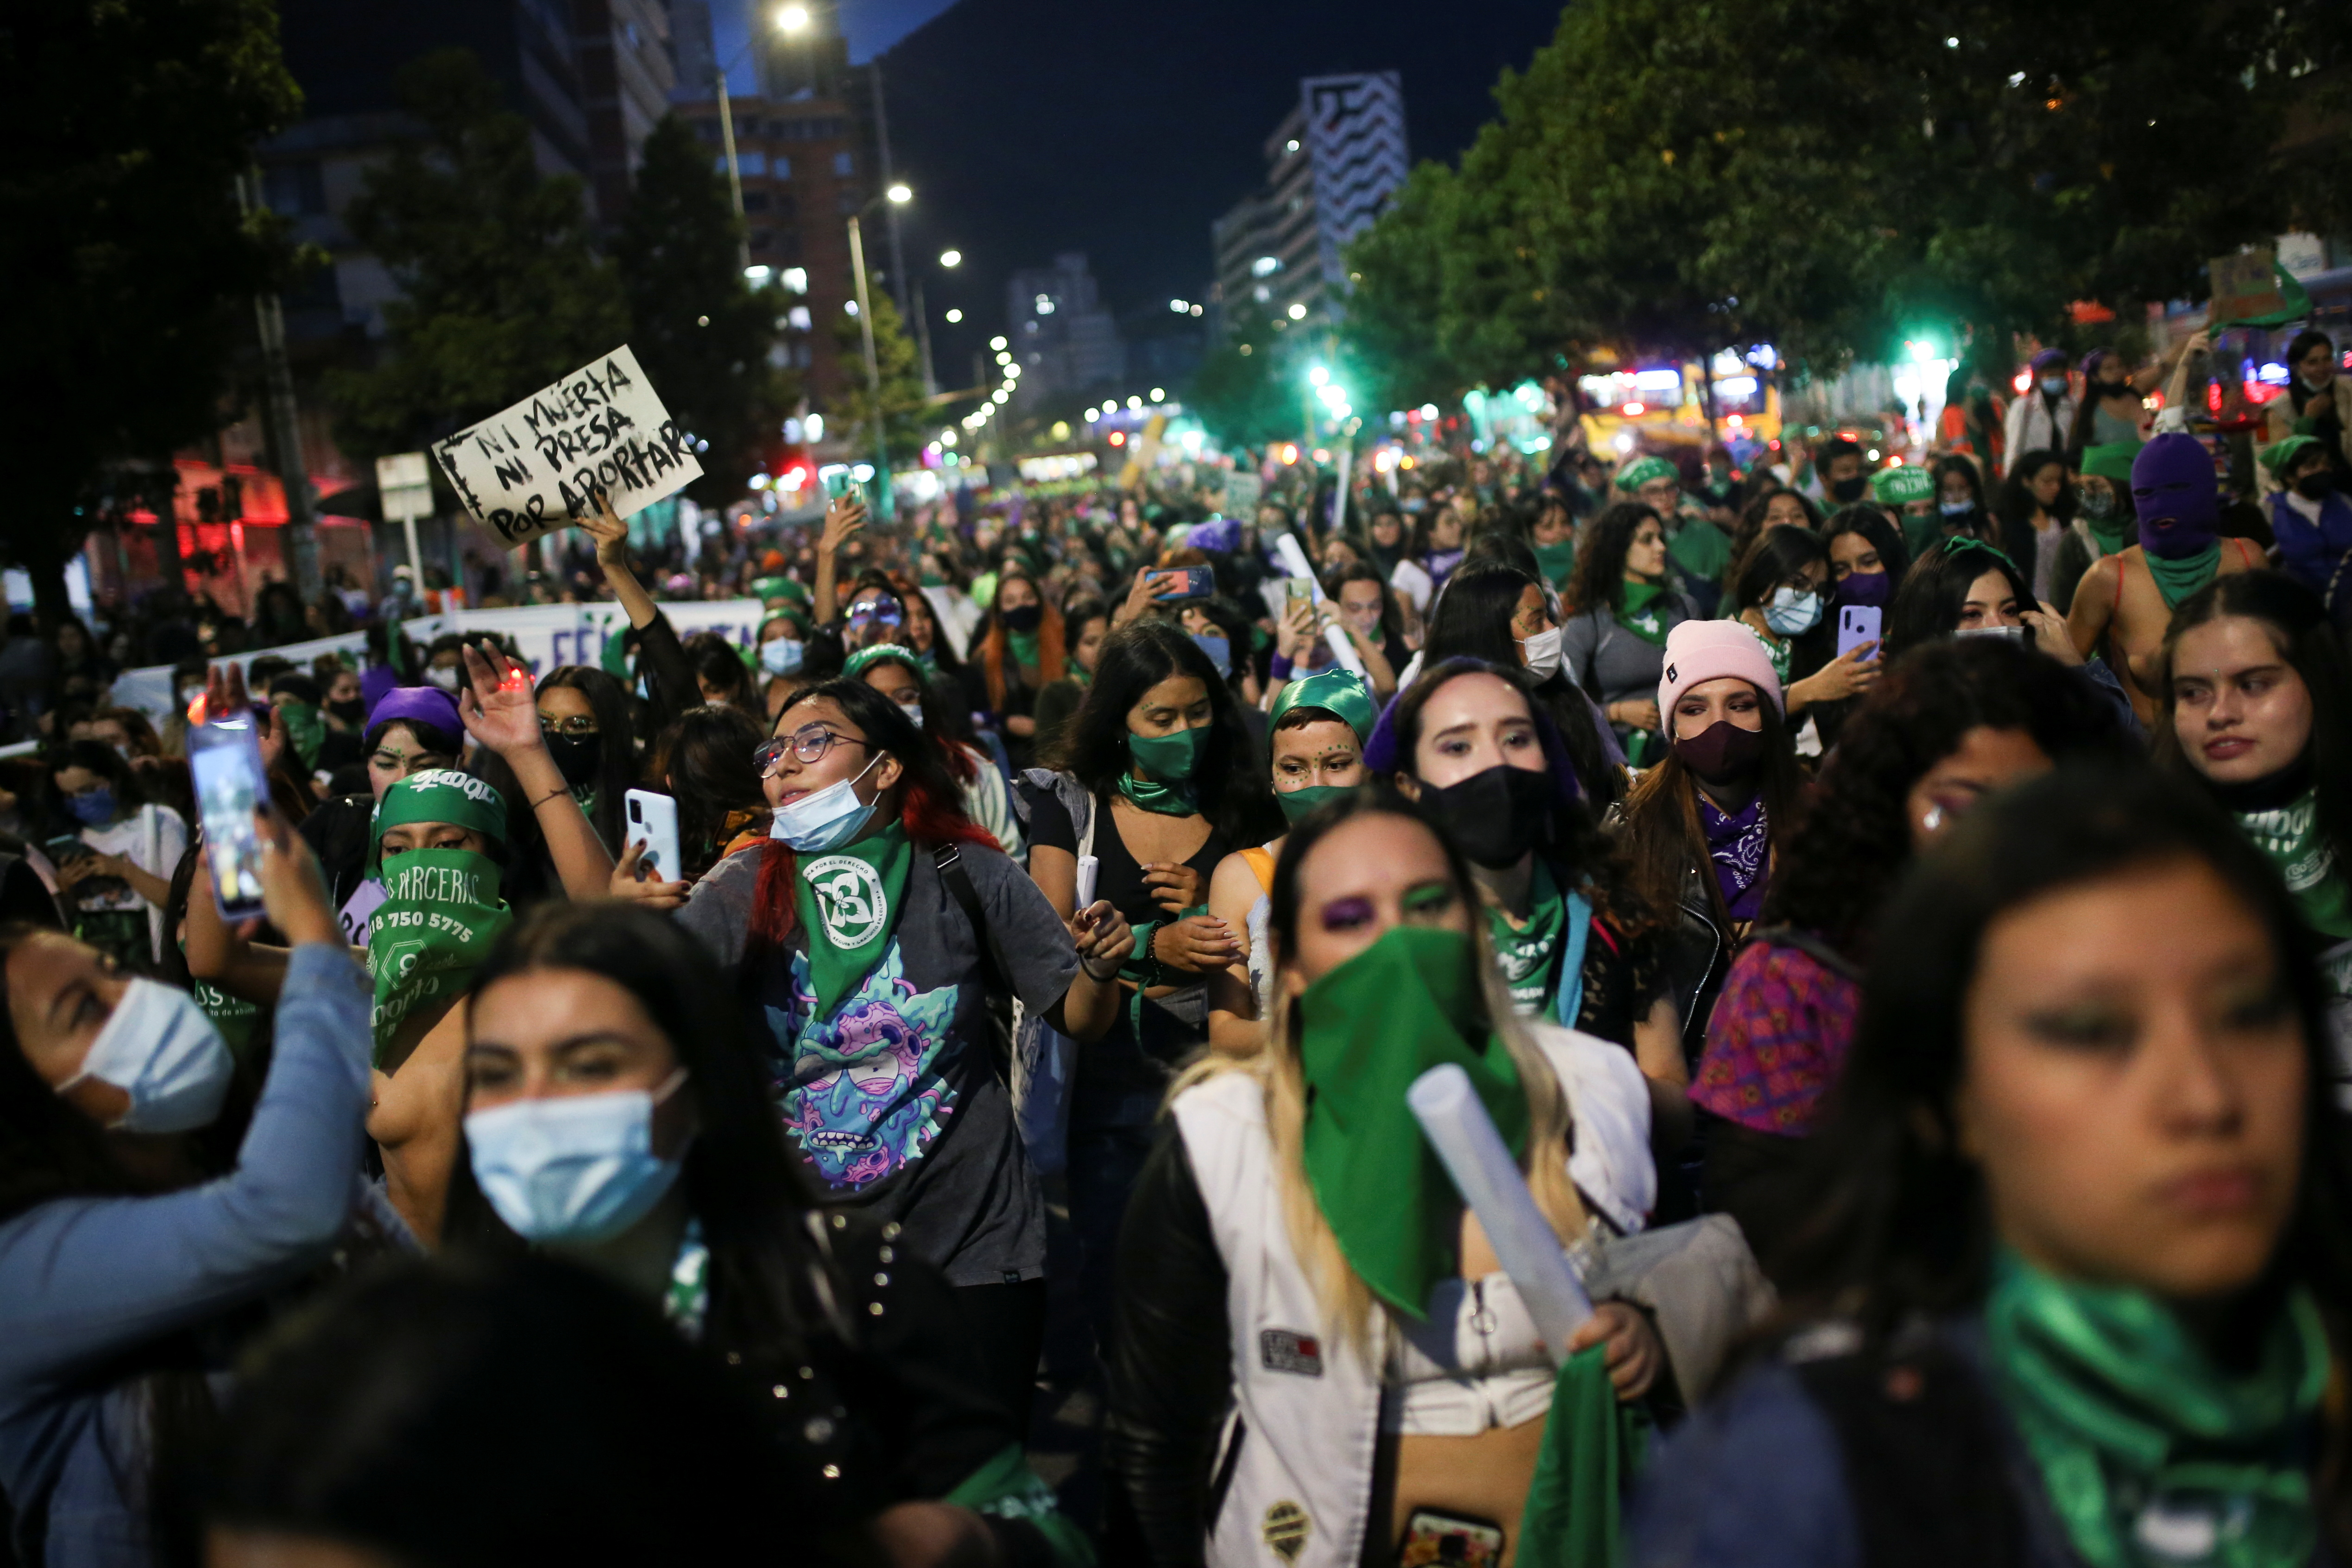 Demonstrators march in support of legal and safe abortion and to mark the International Safe Abortion Day in Bogota, Colombia September 28, 2021. The sign reads